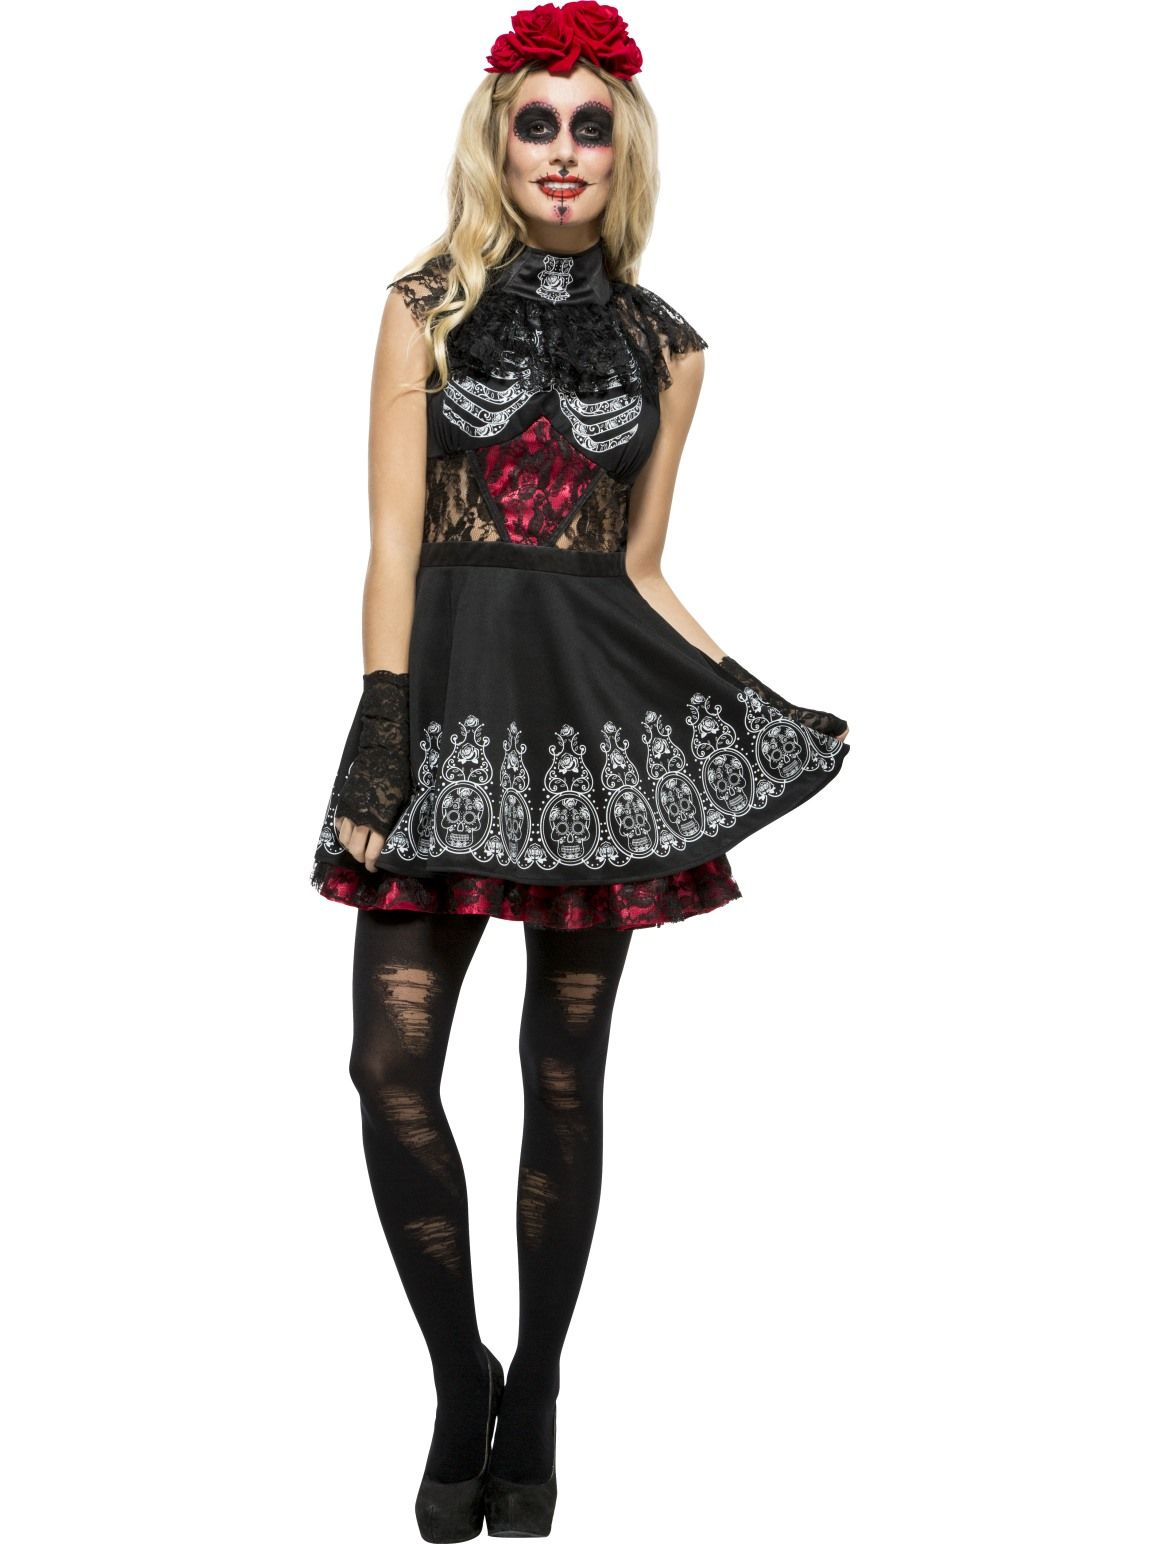 Fever Day of the Dead Costume - Buy Online Only